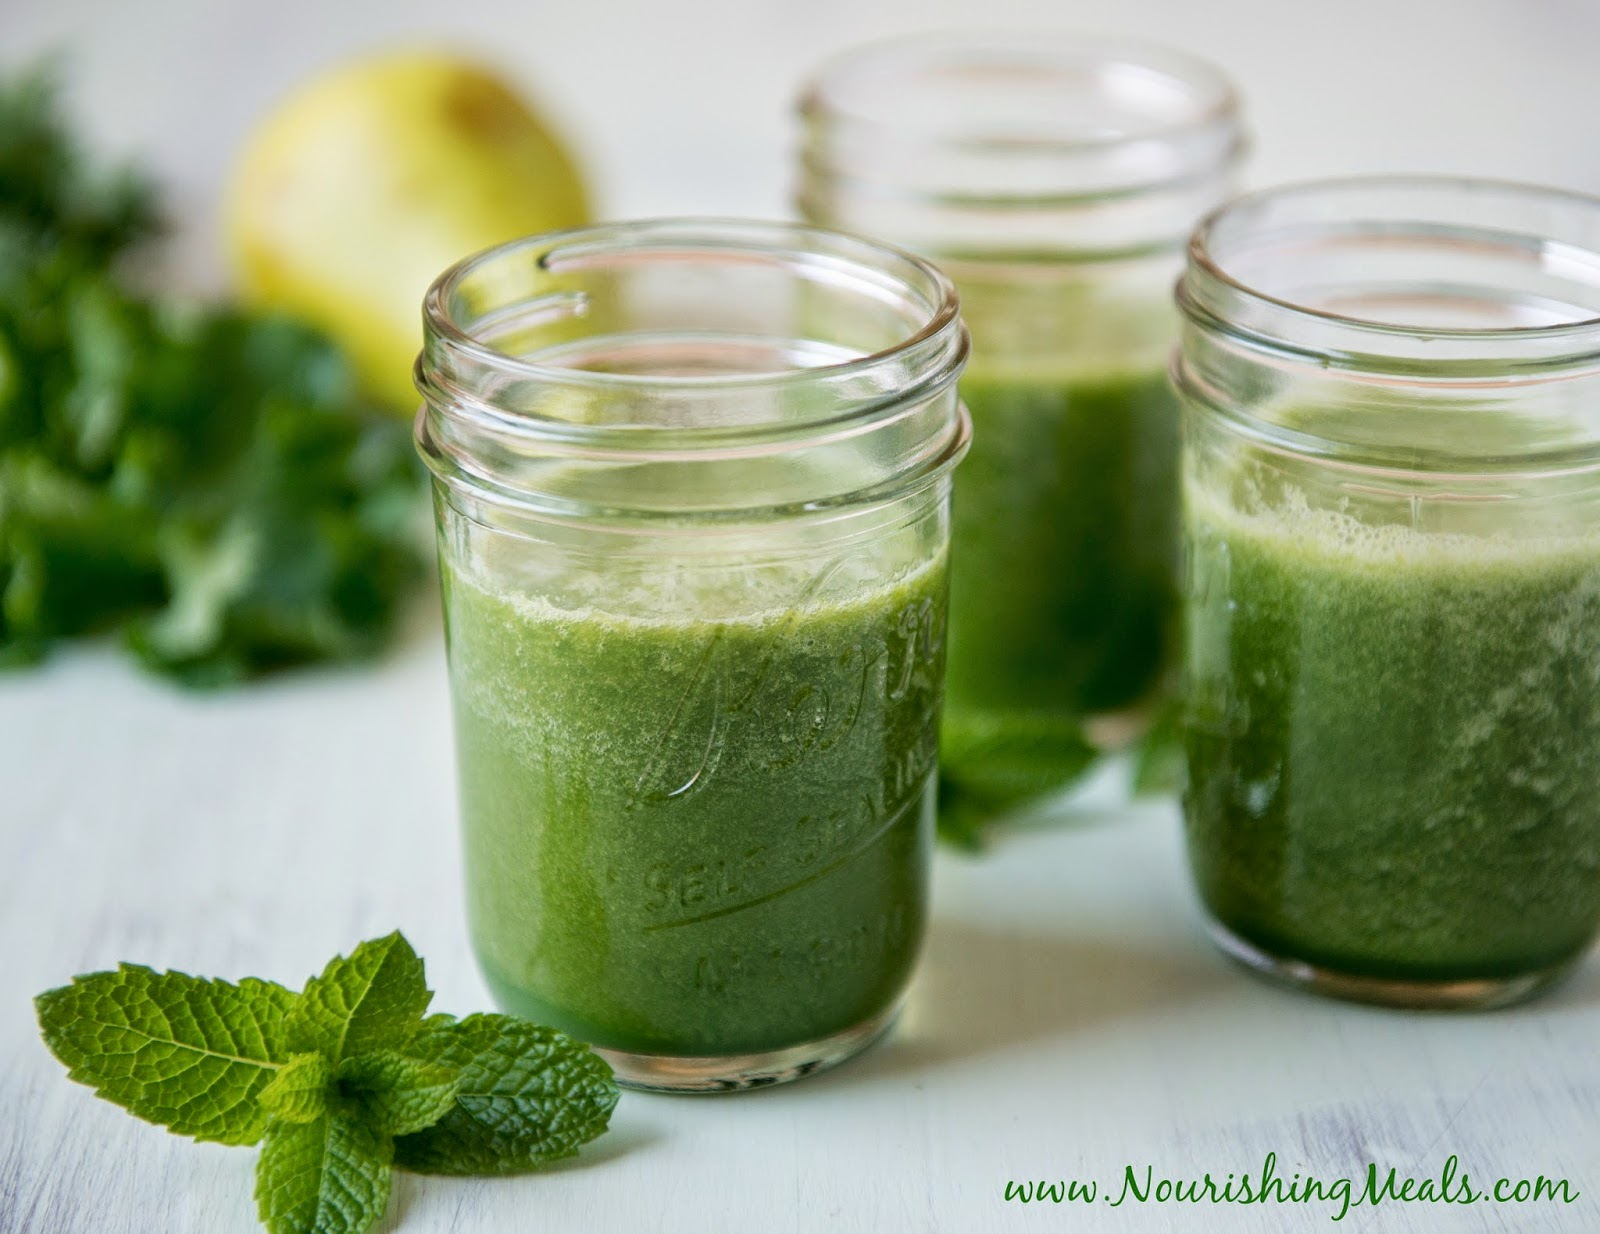 Nourishing Meals®: Green Smoothie Recipe for Babies and Toddlers